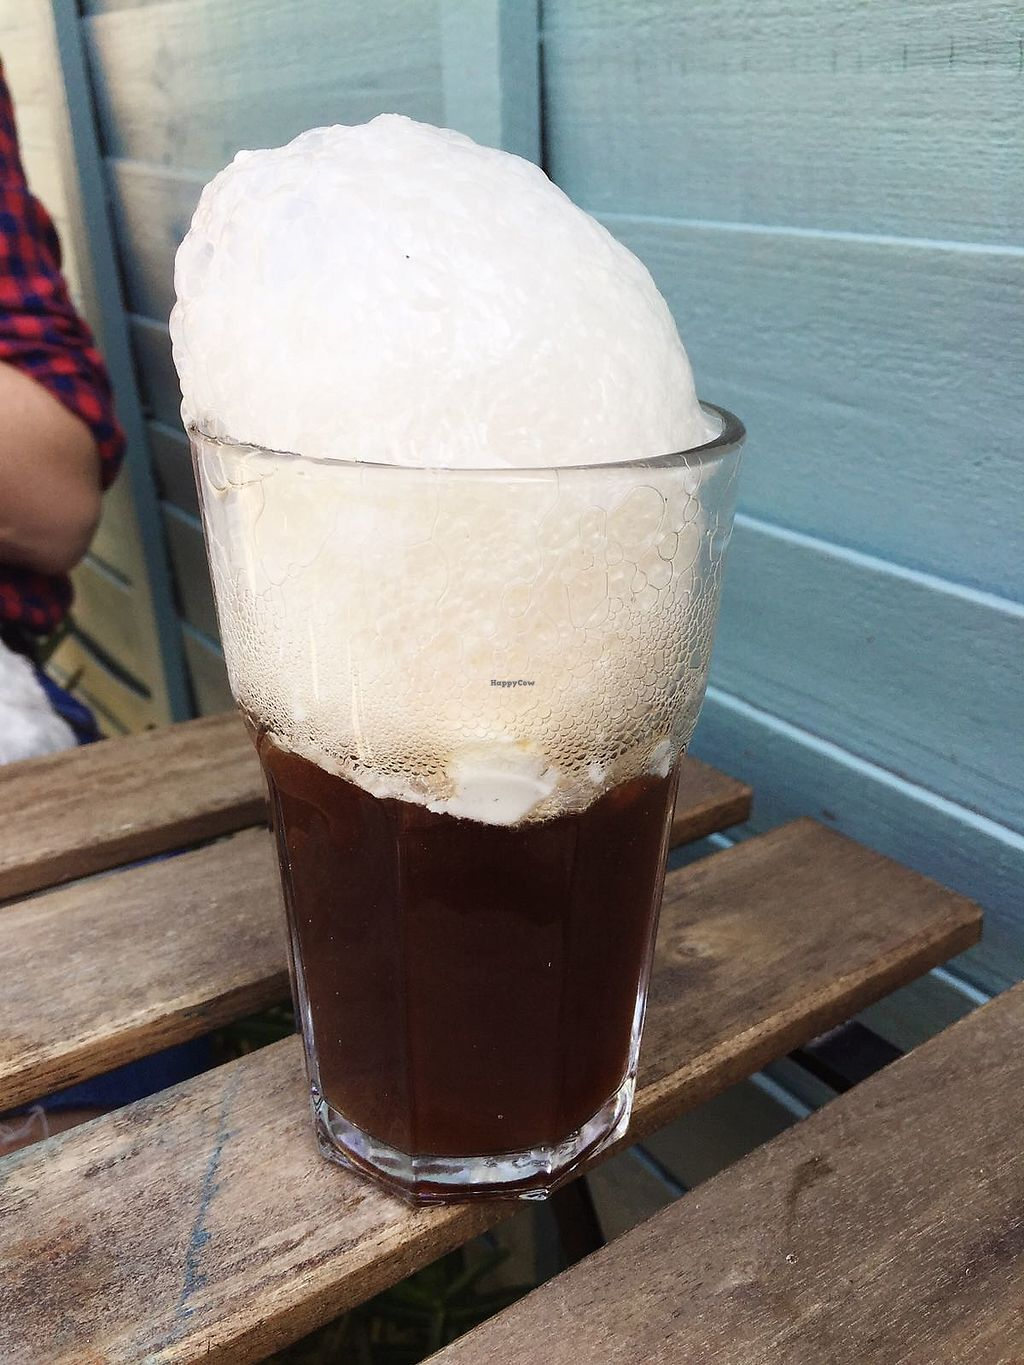 """Photo of Potato Tomato - The Eatery  by <a href=""""/members/profile/TARAMCDONALD"""">TARAMCDONALD</a> <br/>Sooo good on a hot day! Coke float with vegan ice cream! Yum! <br/> April 22, 2018  - <a href='/contact/abuse/image/97735/389478'>Report</a>"""